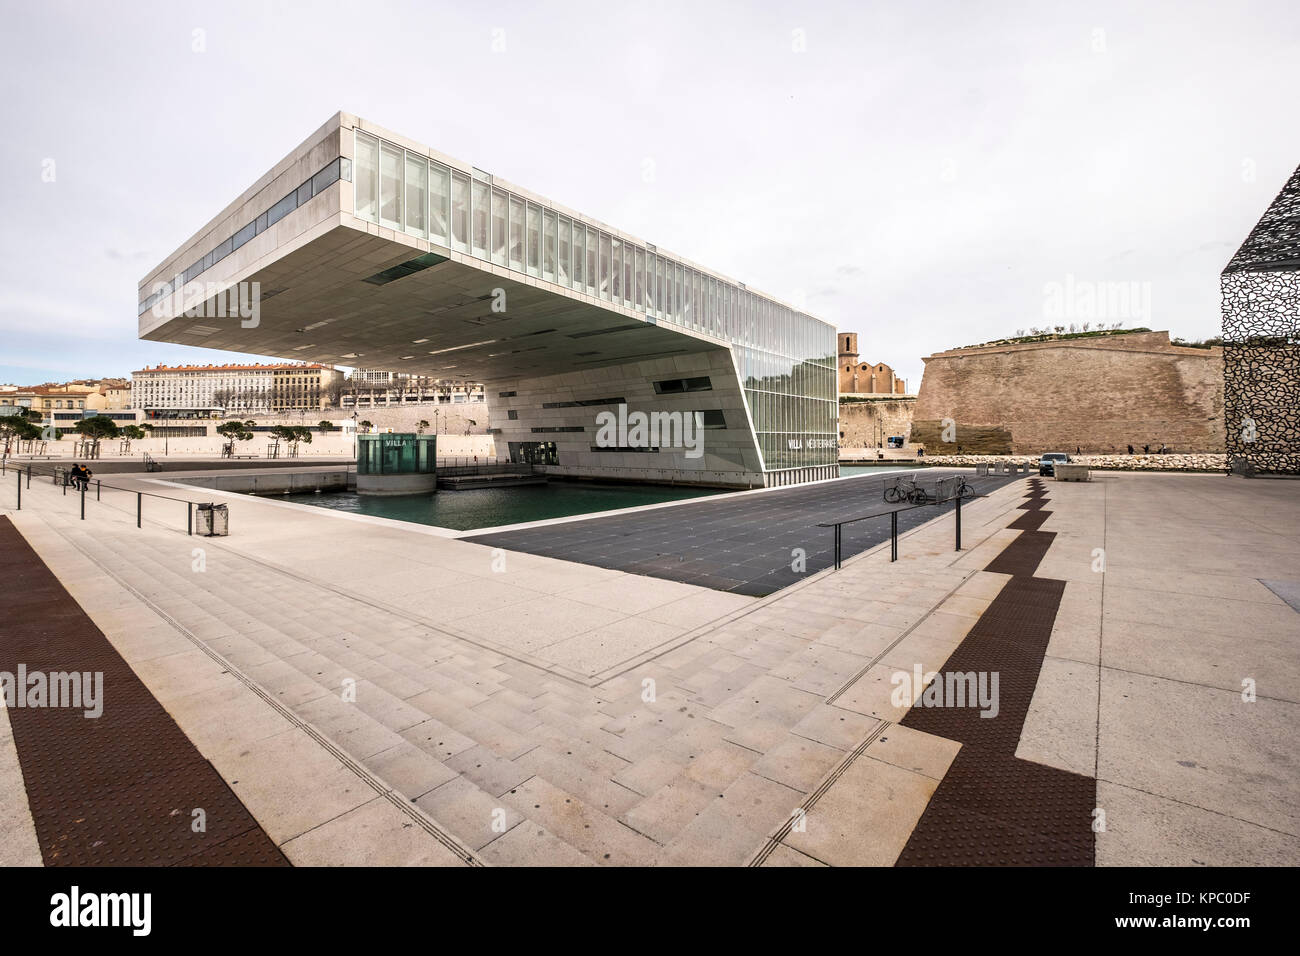 Marseille, France - le 6 mars 2017 : l'architecture moderniste de la Villa Florida Conference Center conçu par Stefano Banque D'Images